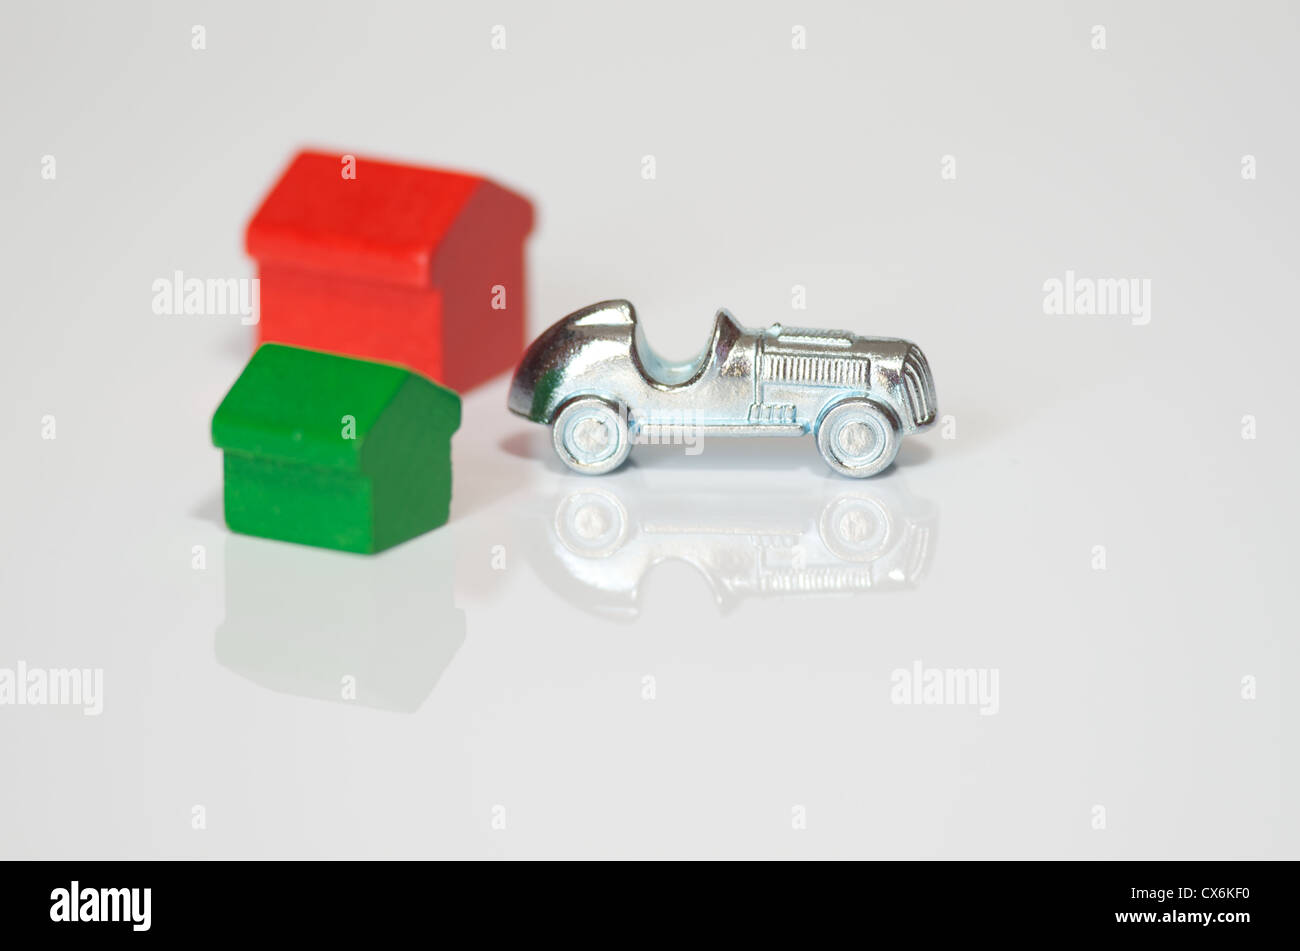 Monopoly car and house isolated on white background with reflection - Stock Image